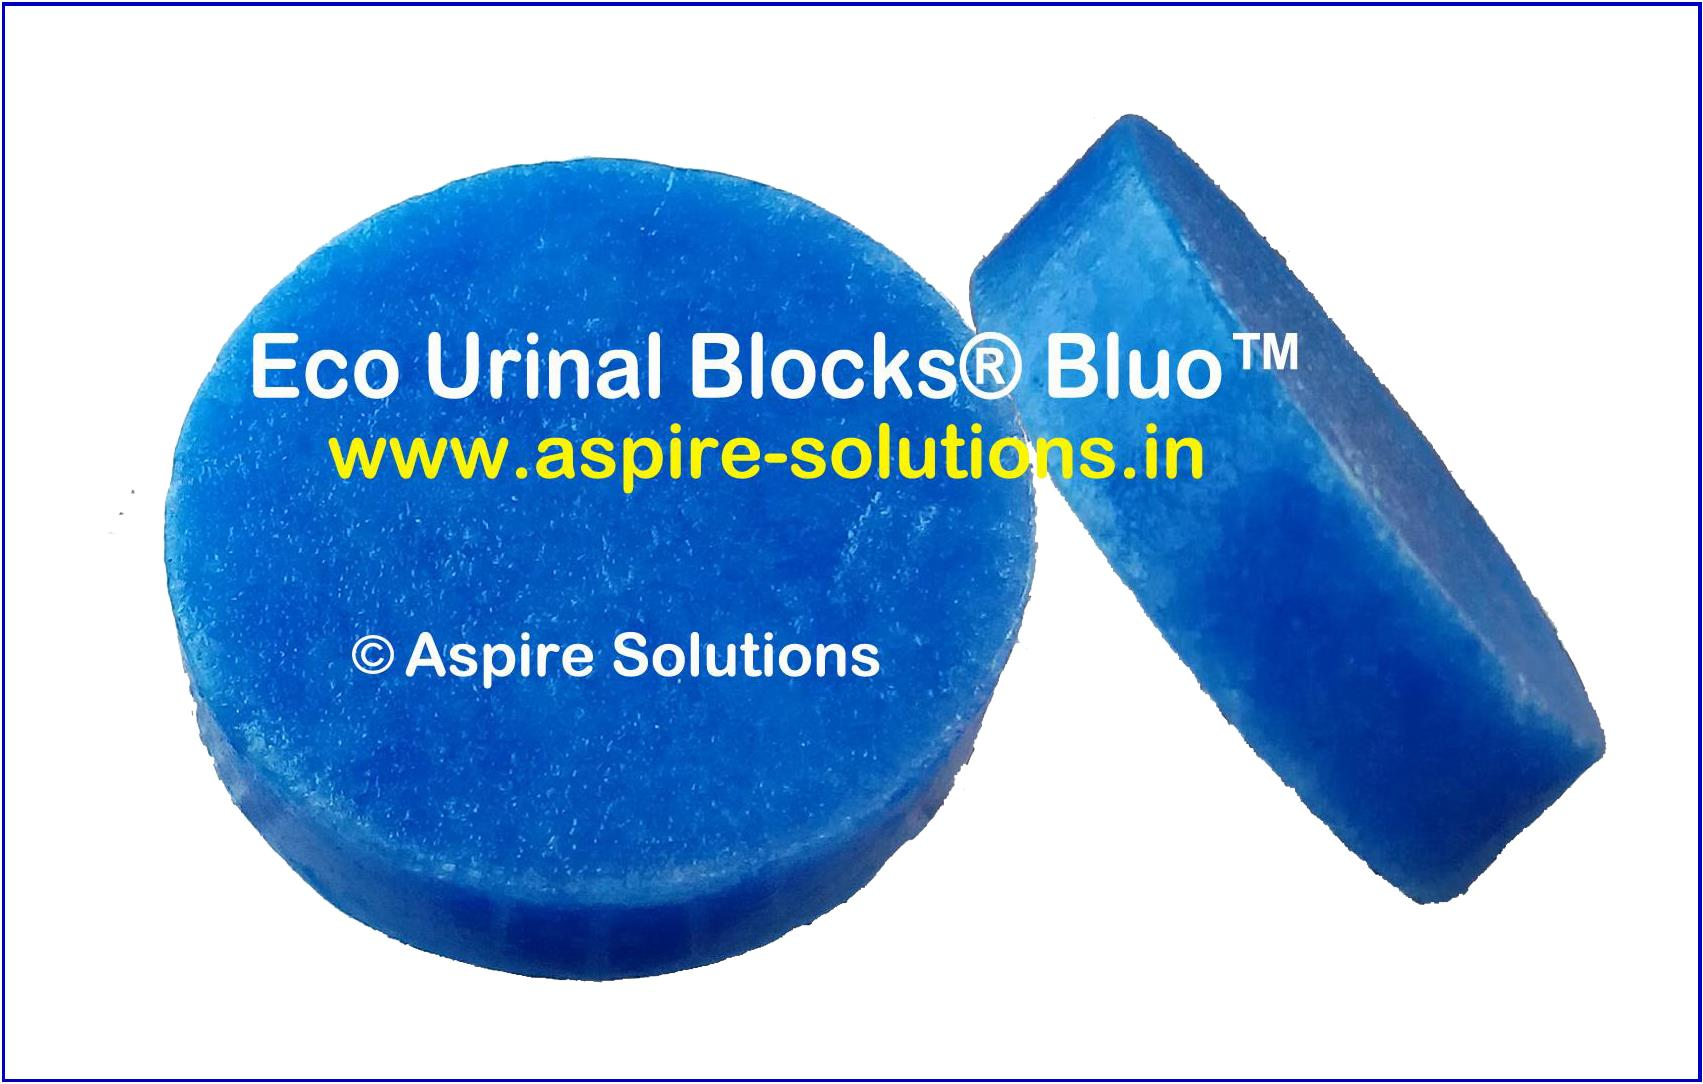 Eco Urinal Blocks® Bluo™, Bio Urinal Blocks, Biological Blocks, Bio Urinal Cubes, Bio Cubes, Urinal Screens, Waterless Urinal Blocks, Bio Blocks for urinals